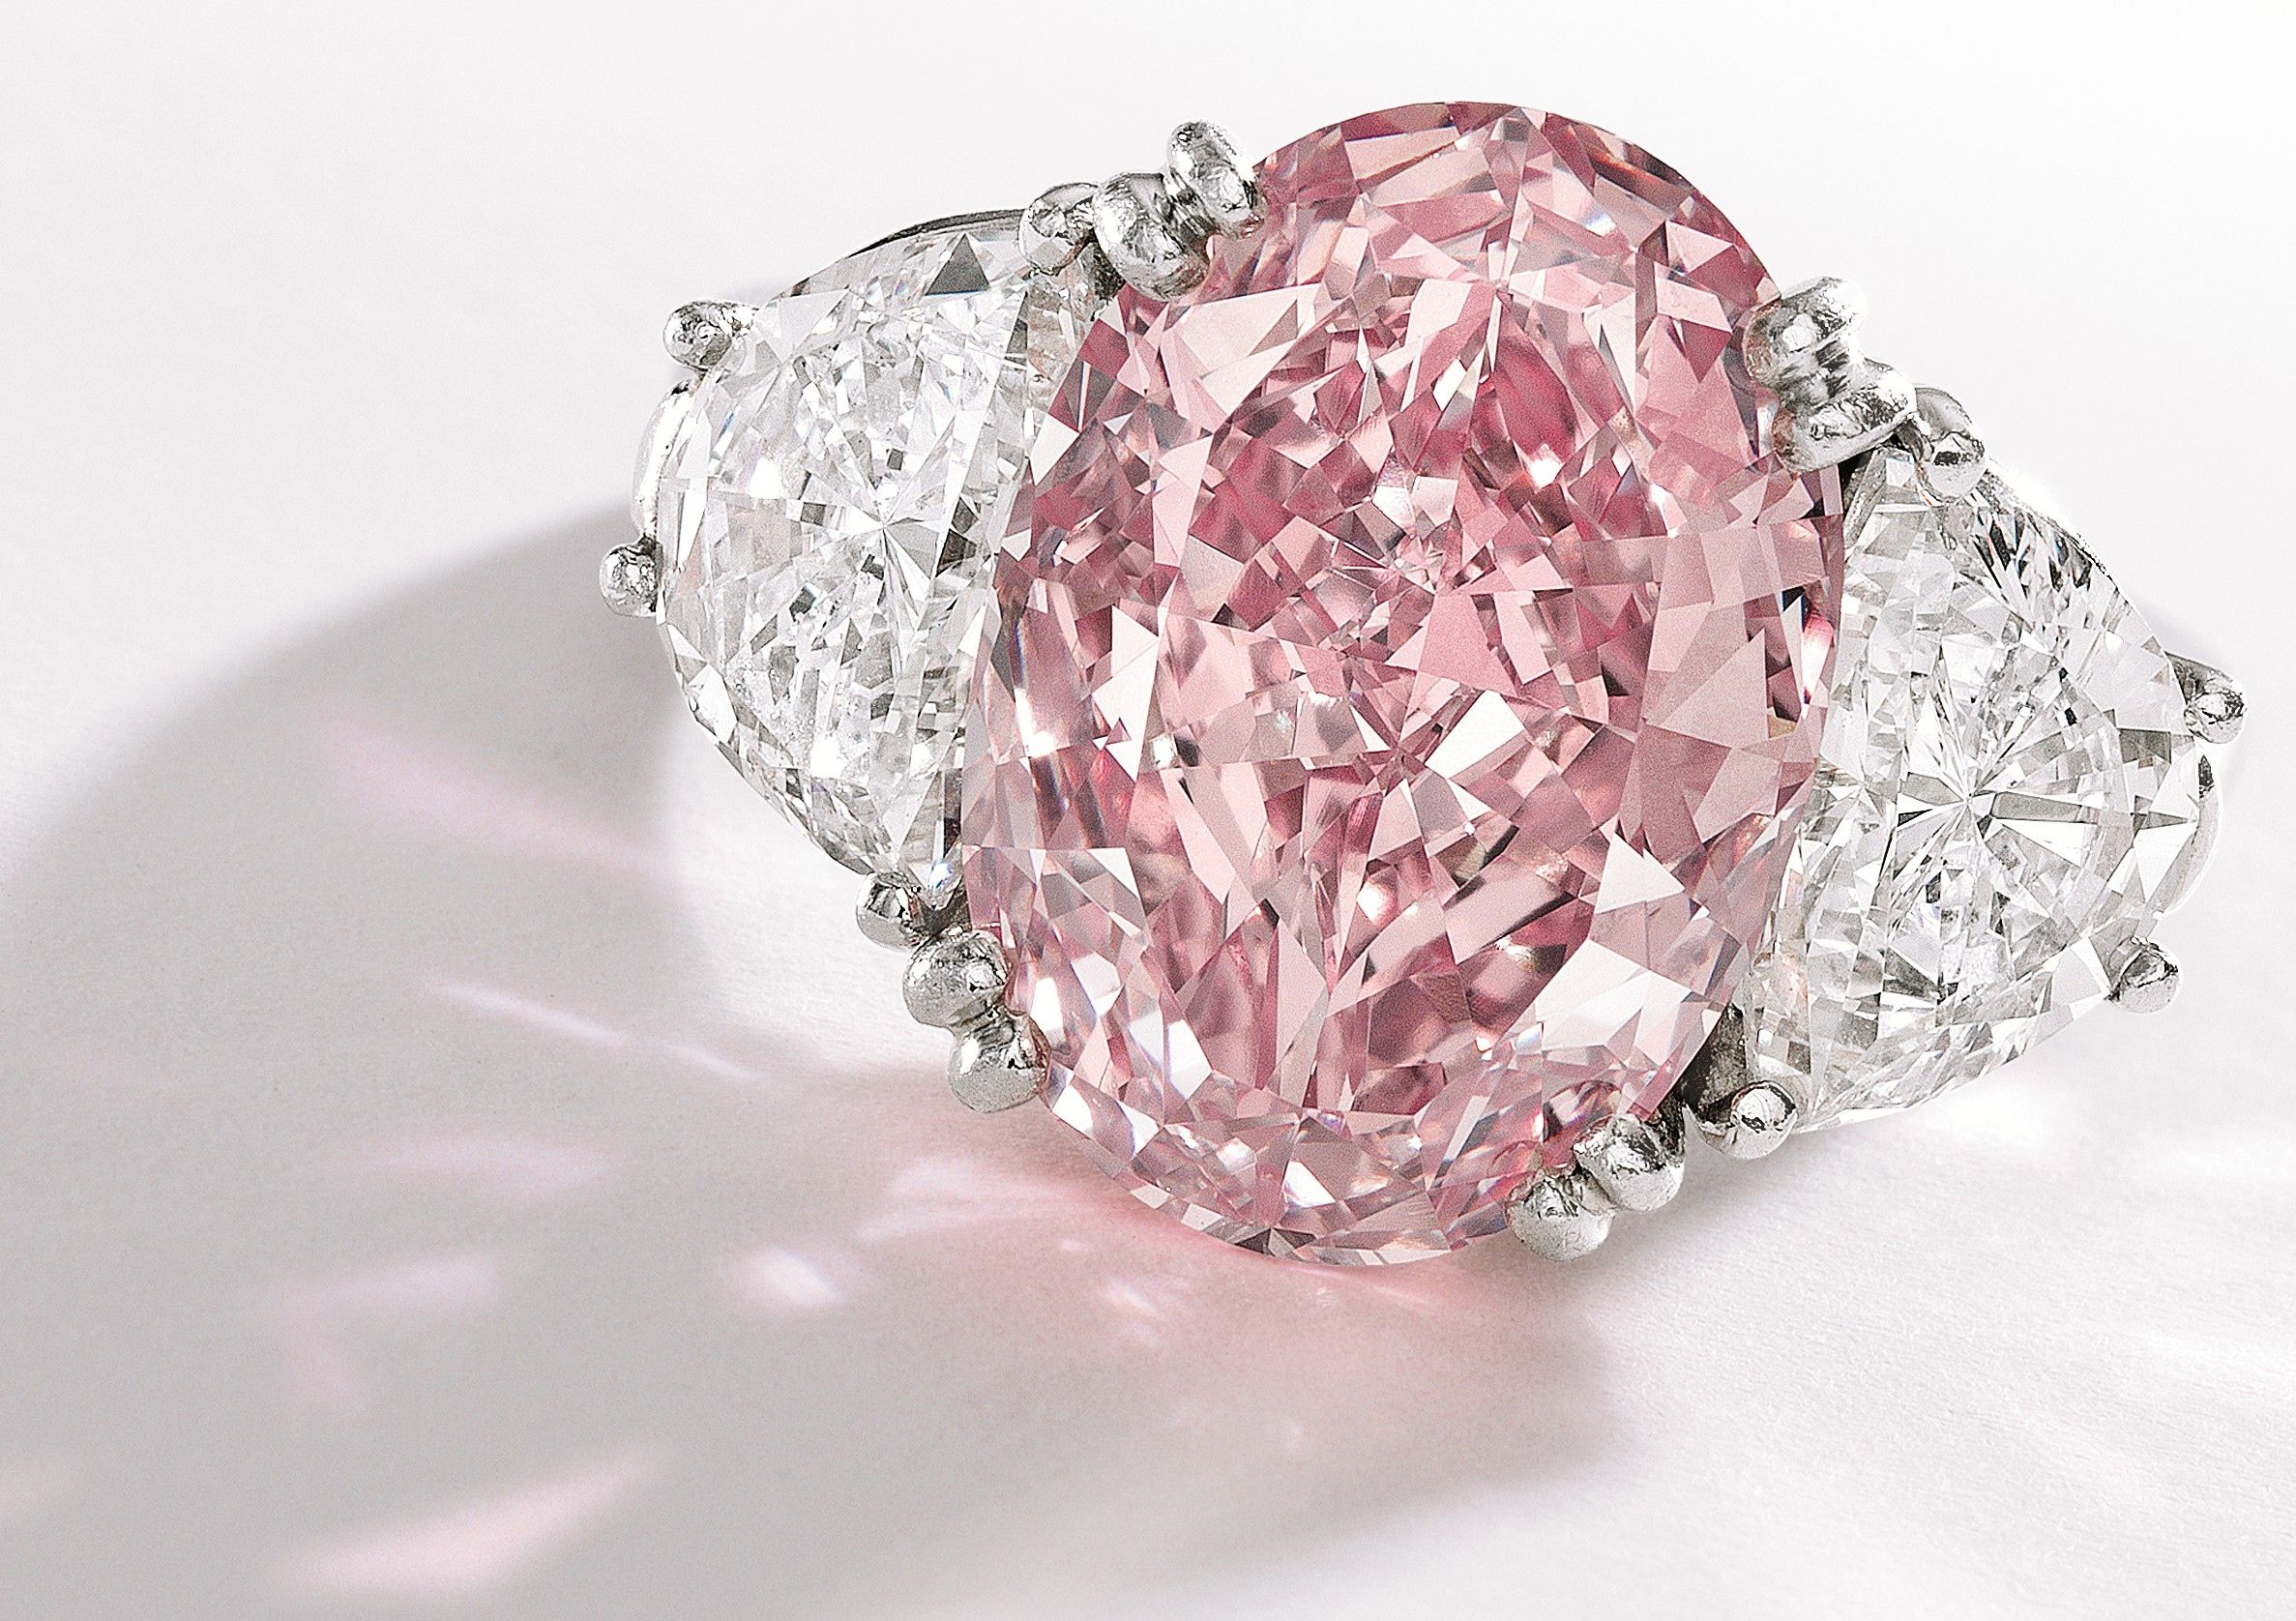 Evelyn Lauder\'s 6.54 carat Fancy Intense Pink Diamond sold for $8.59 ...